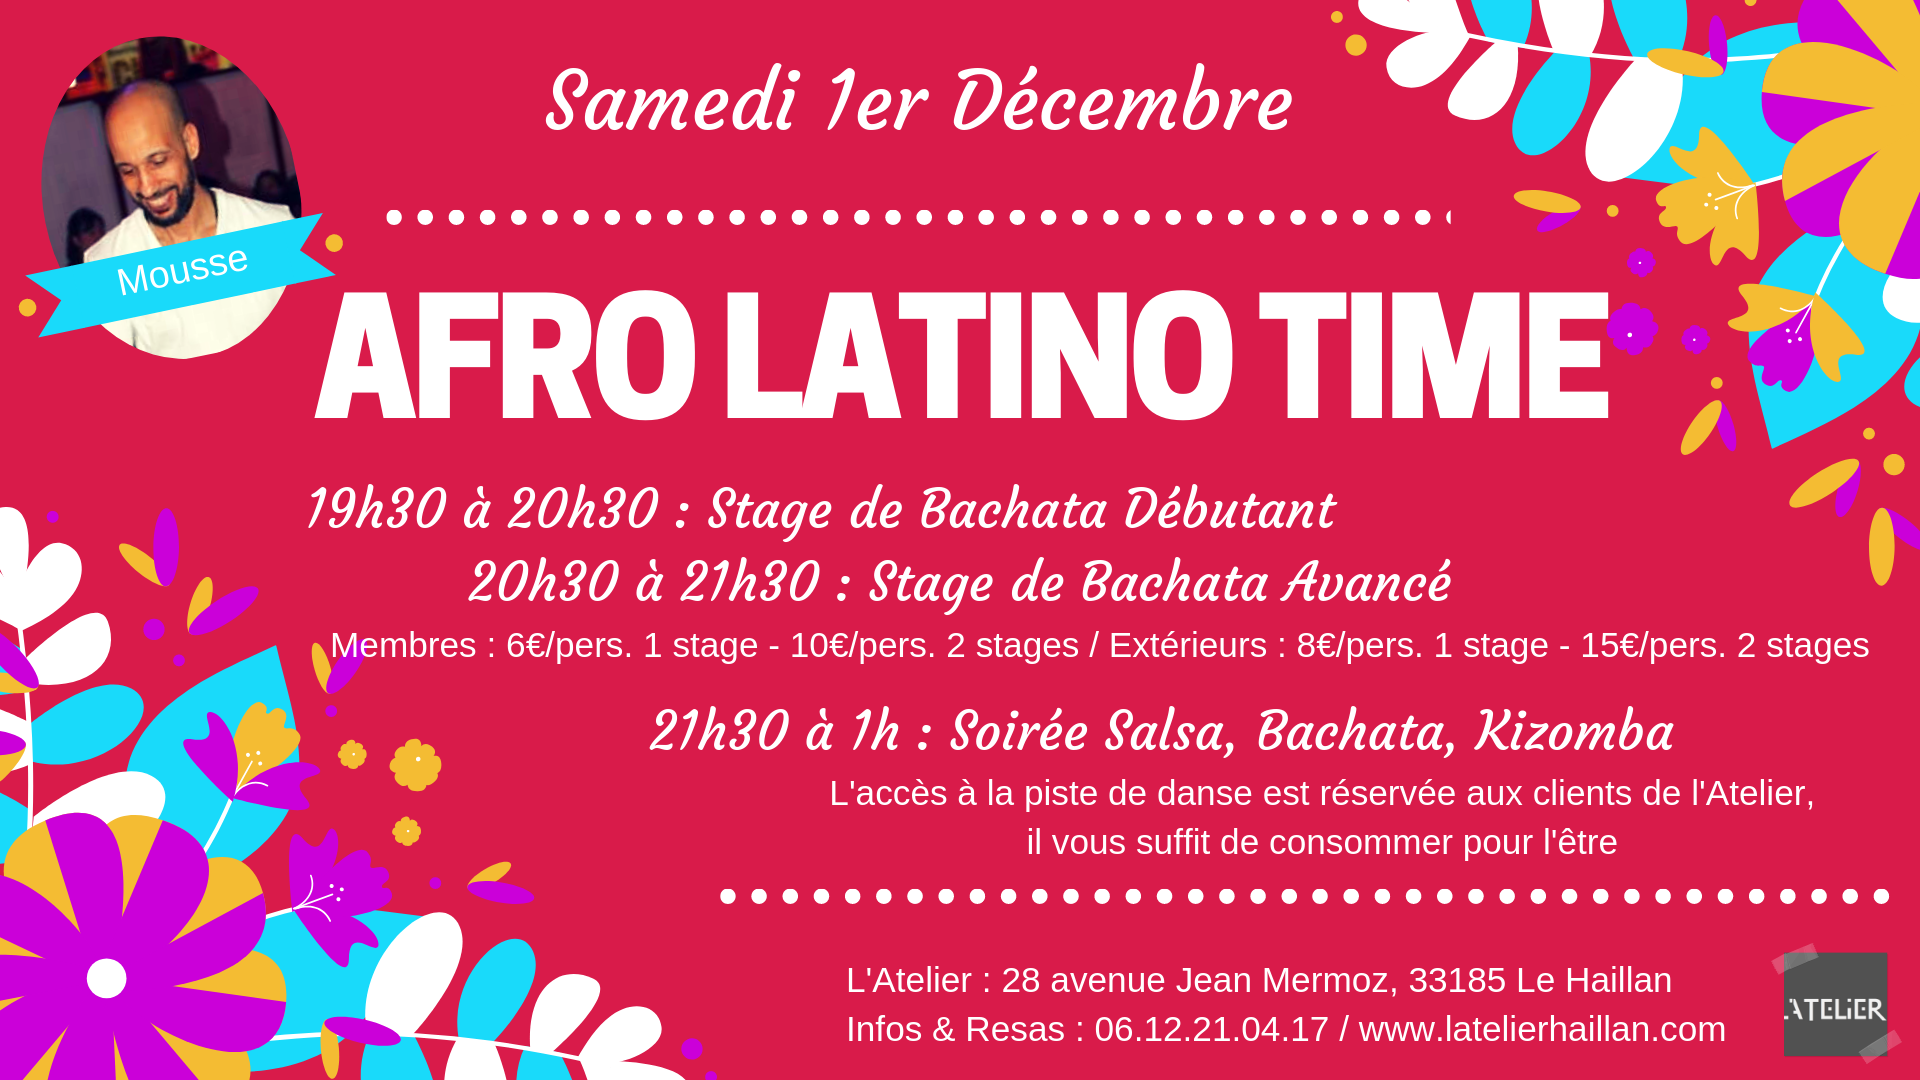 Afro Latino Time avec Mousse - 2 stages de Bachata